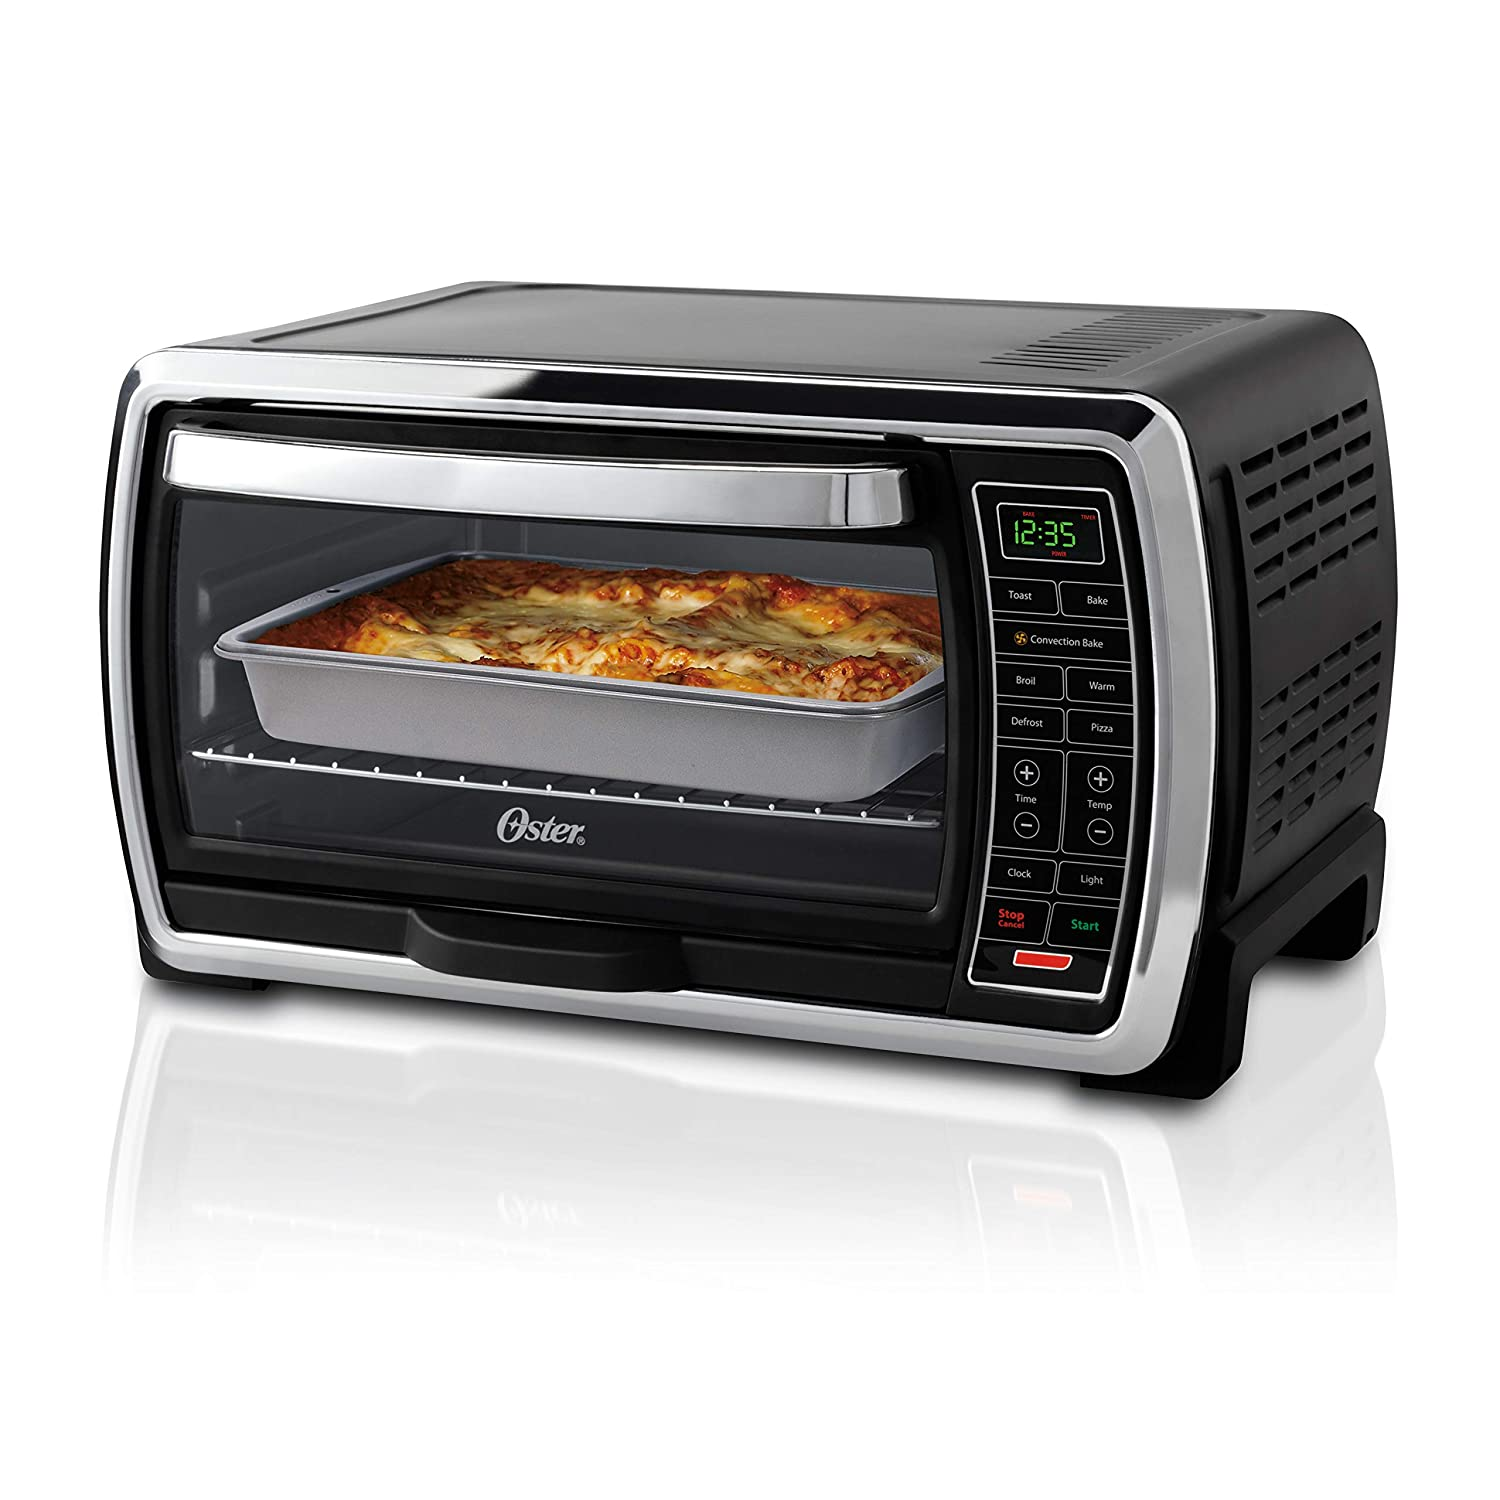 Top 10 Recommended Oster Toaster Oven Model 6233 Home